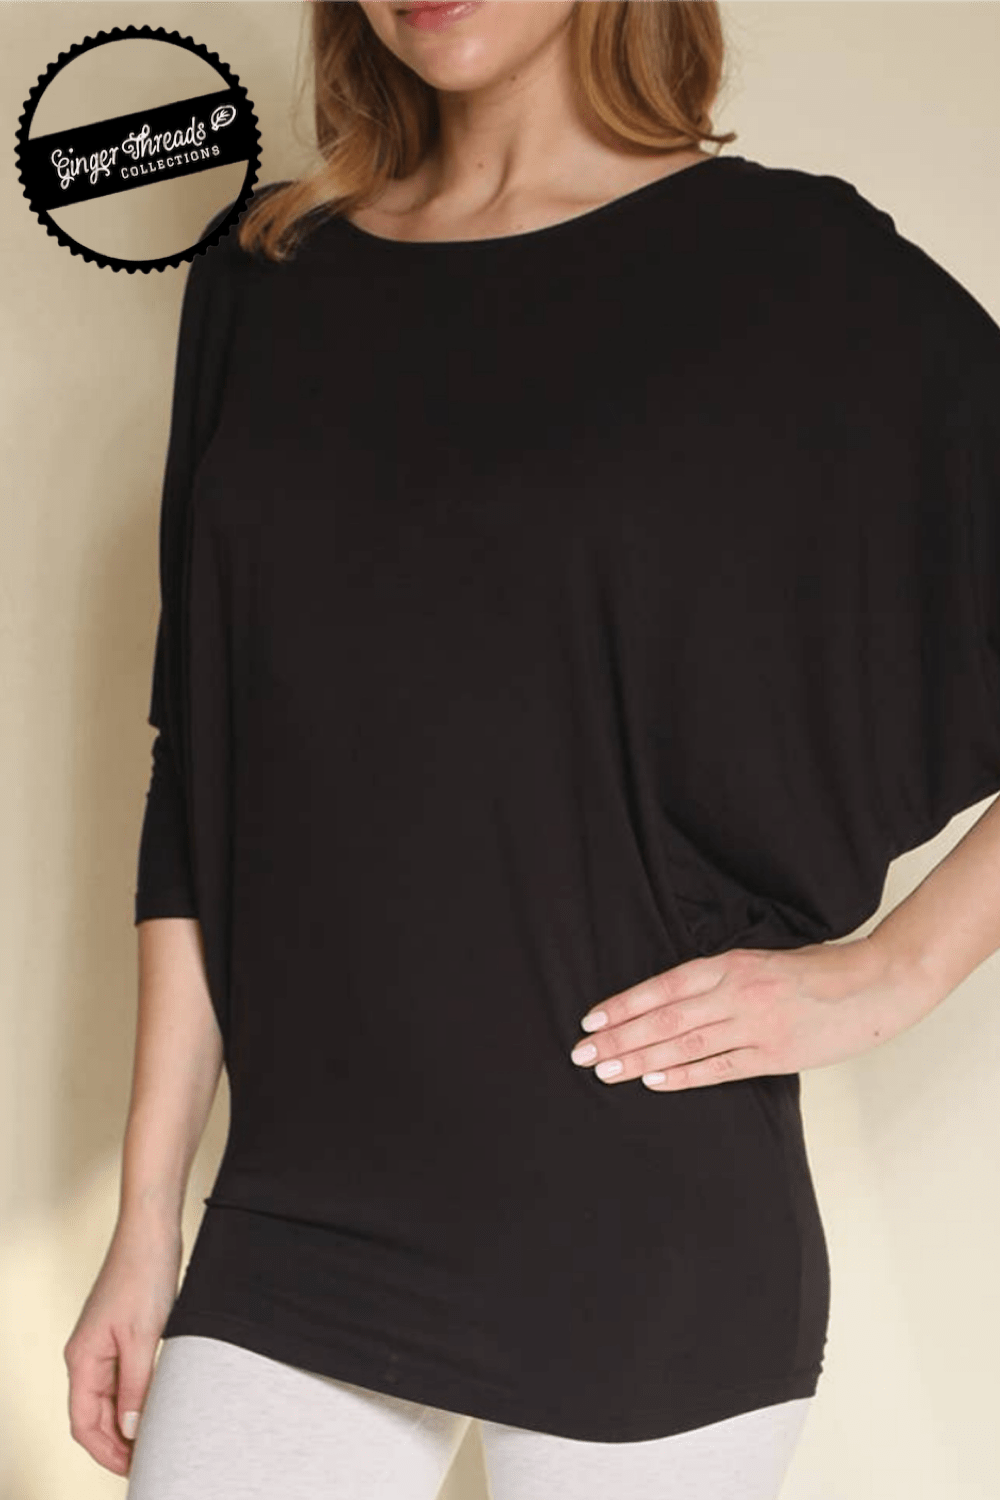 Ginger Threads Collections top Black Bamboo Dolman